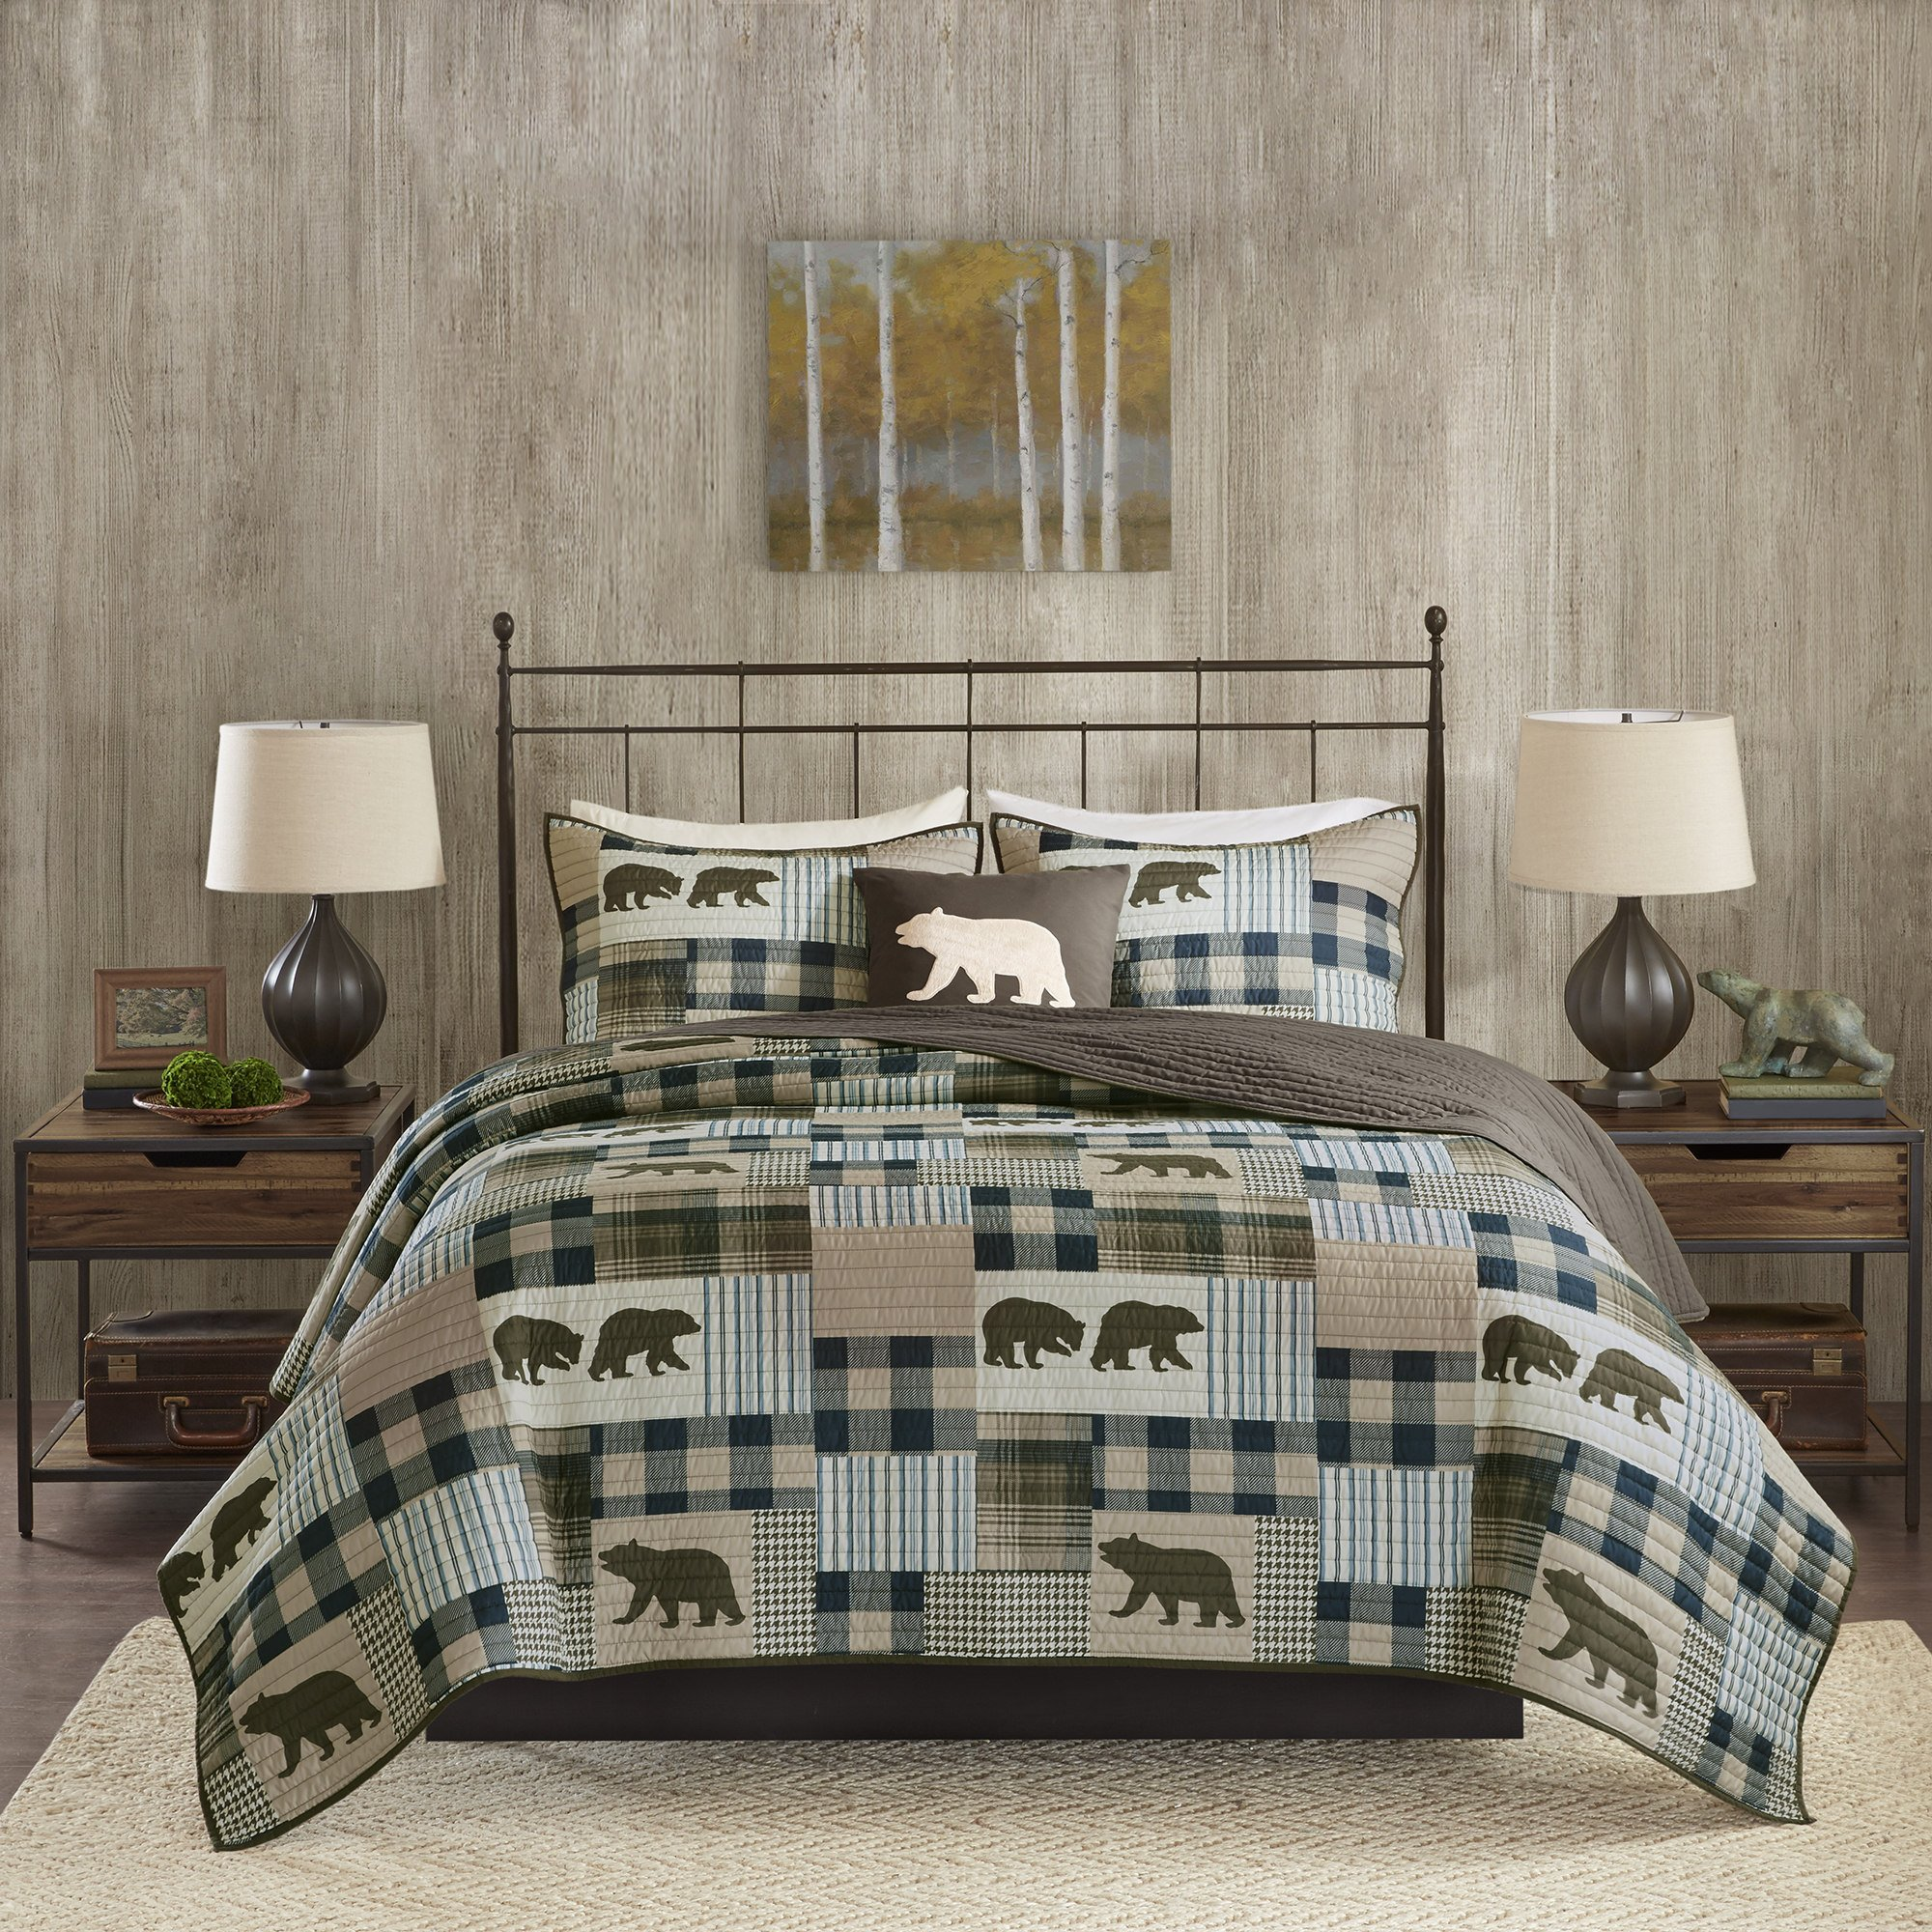 4 Piece Blue Brown Plaid King\Cal King Quilt Set, Cabin Lodge Hunting Theme Bedding, Animal Print Bear Striped Checkered Pattern Patchwork Lumberjack Rugby Stripes Bears Motif Reversible, Polyester